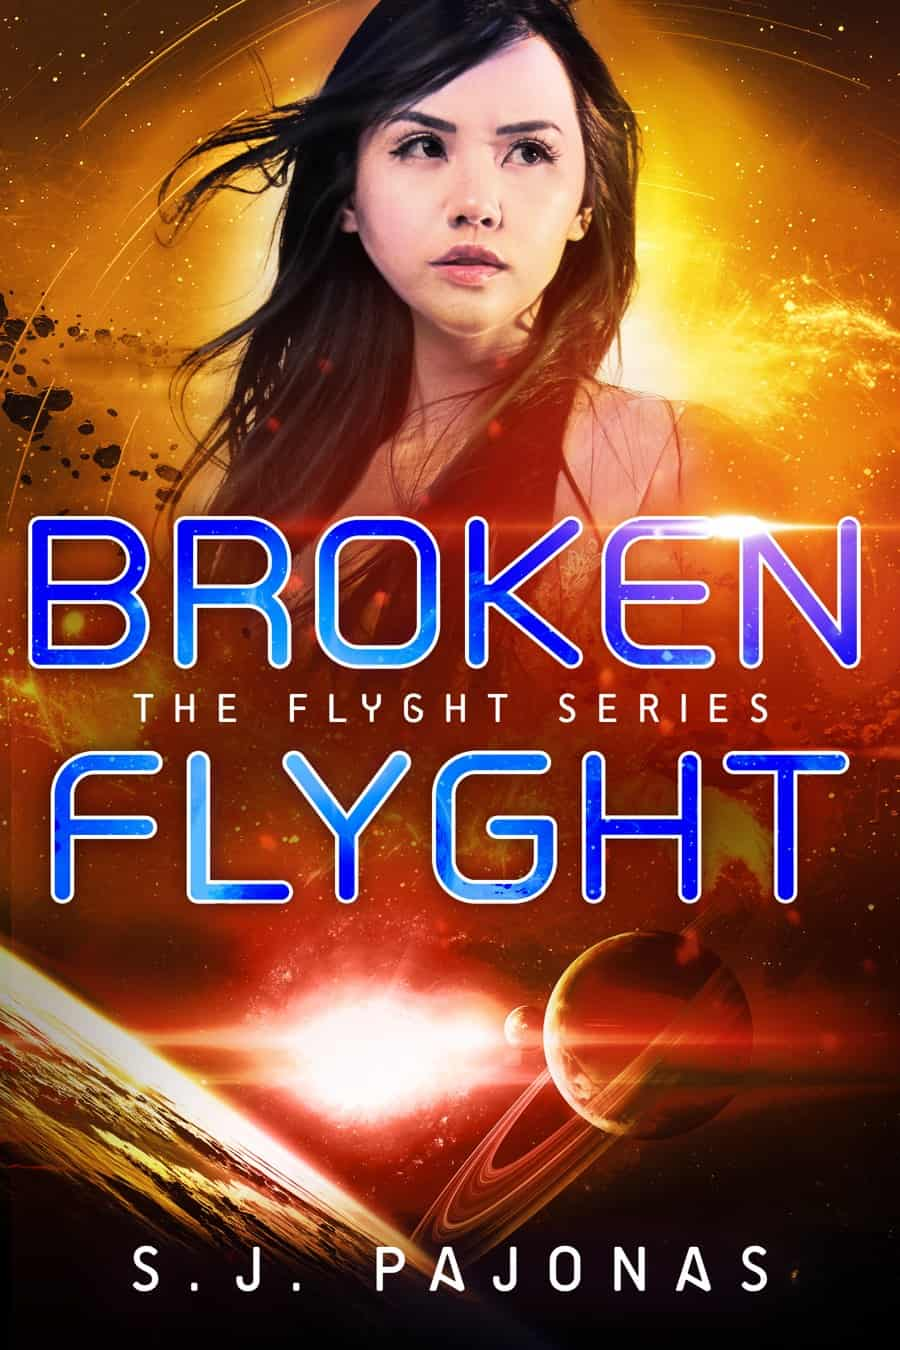 BROKEN FLYGHT is now available on Amazon, Apple Books, Nook, Kobo, Google Play, and Direct. Get the second book in this science fiction reverse harem romance and enjoy your adventures with Vivian and the crew of the Amagi!